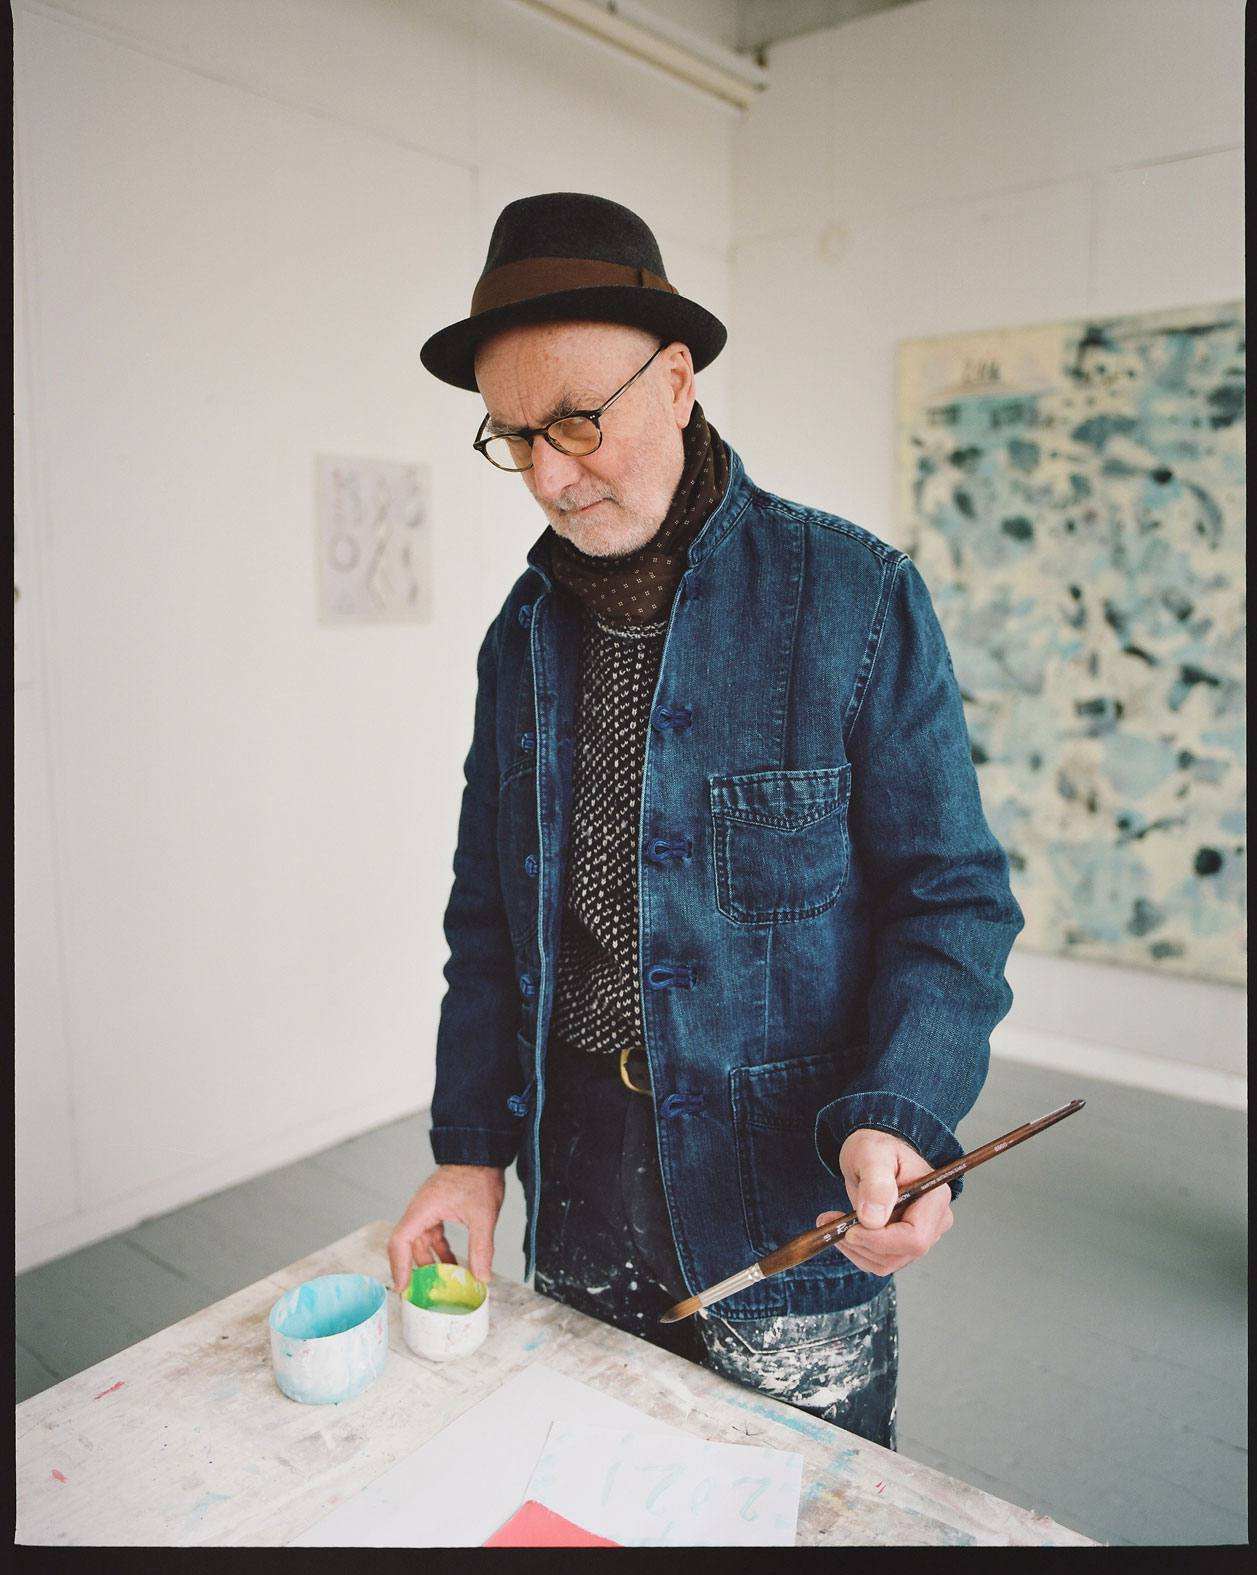 The Artist Chore Jacket, Featuring Clive Hodgson